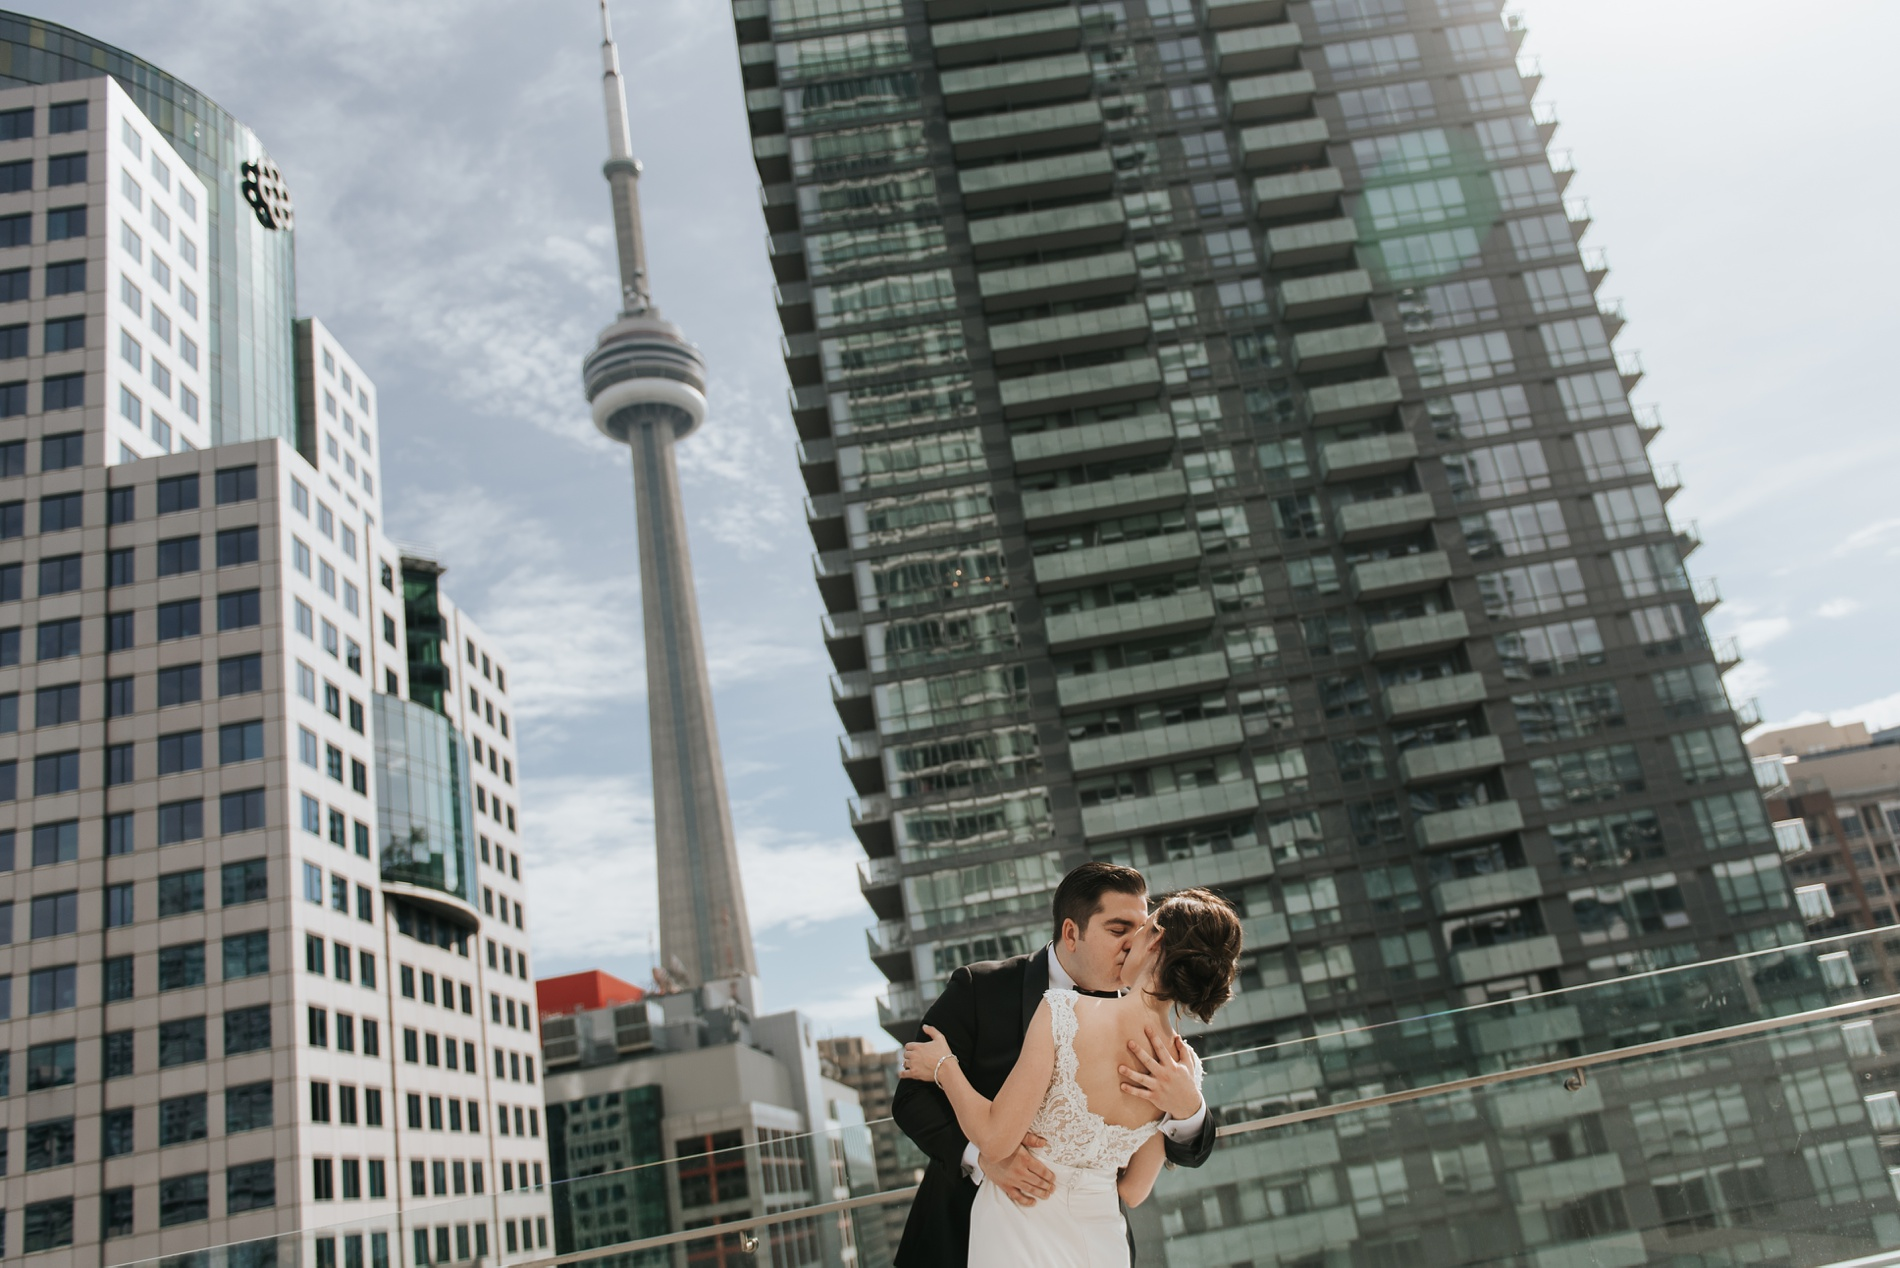 WeddingMalaparteTorontoDowntownCityPhotographer_0034.jpg